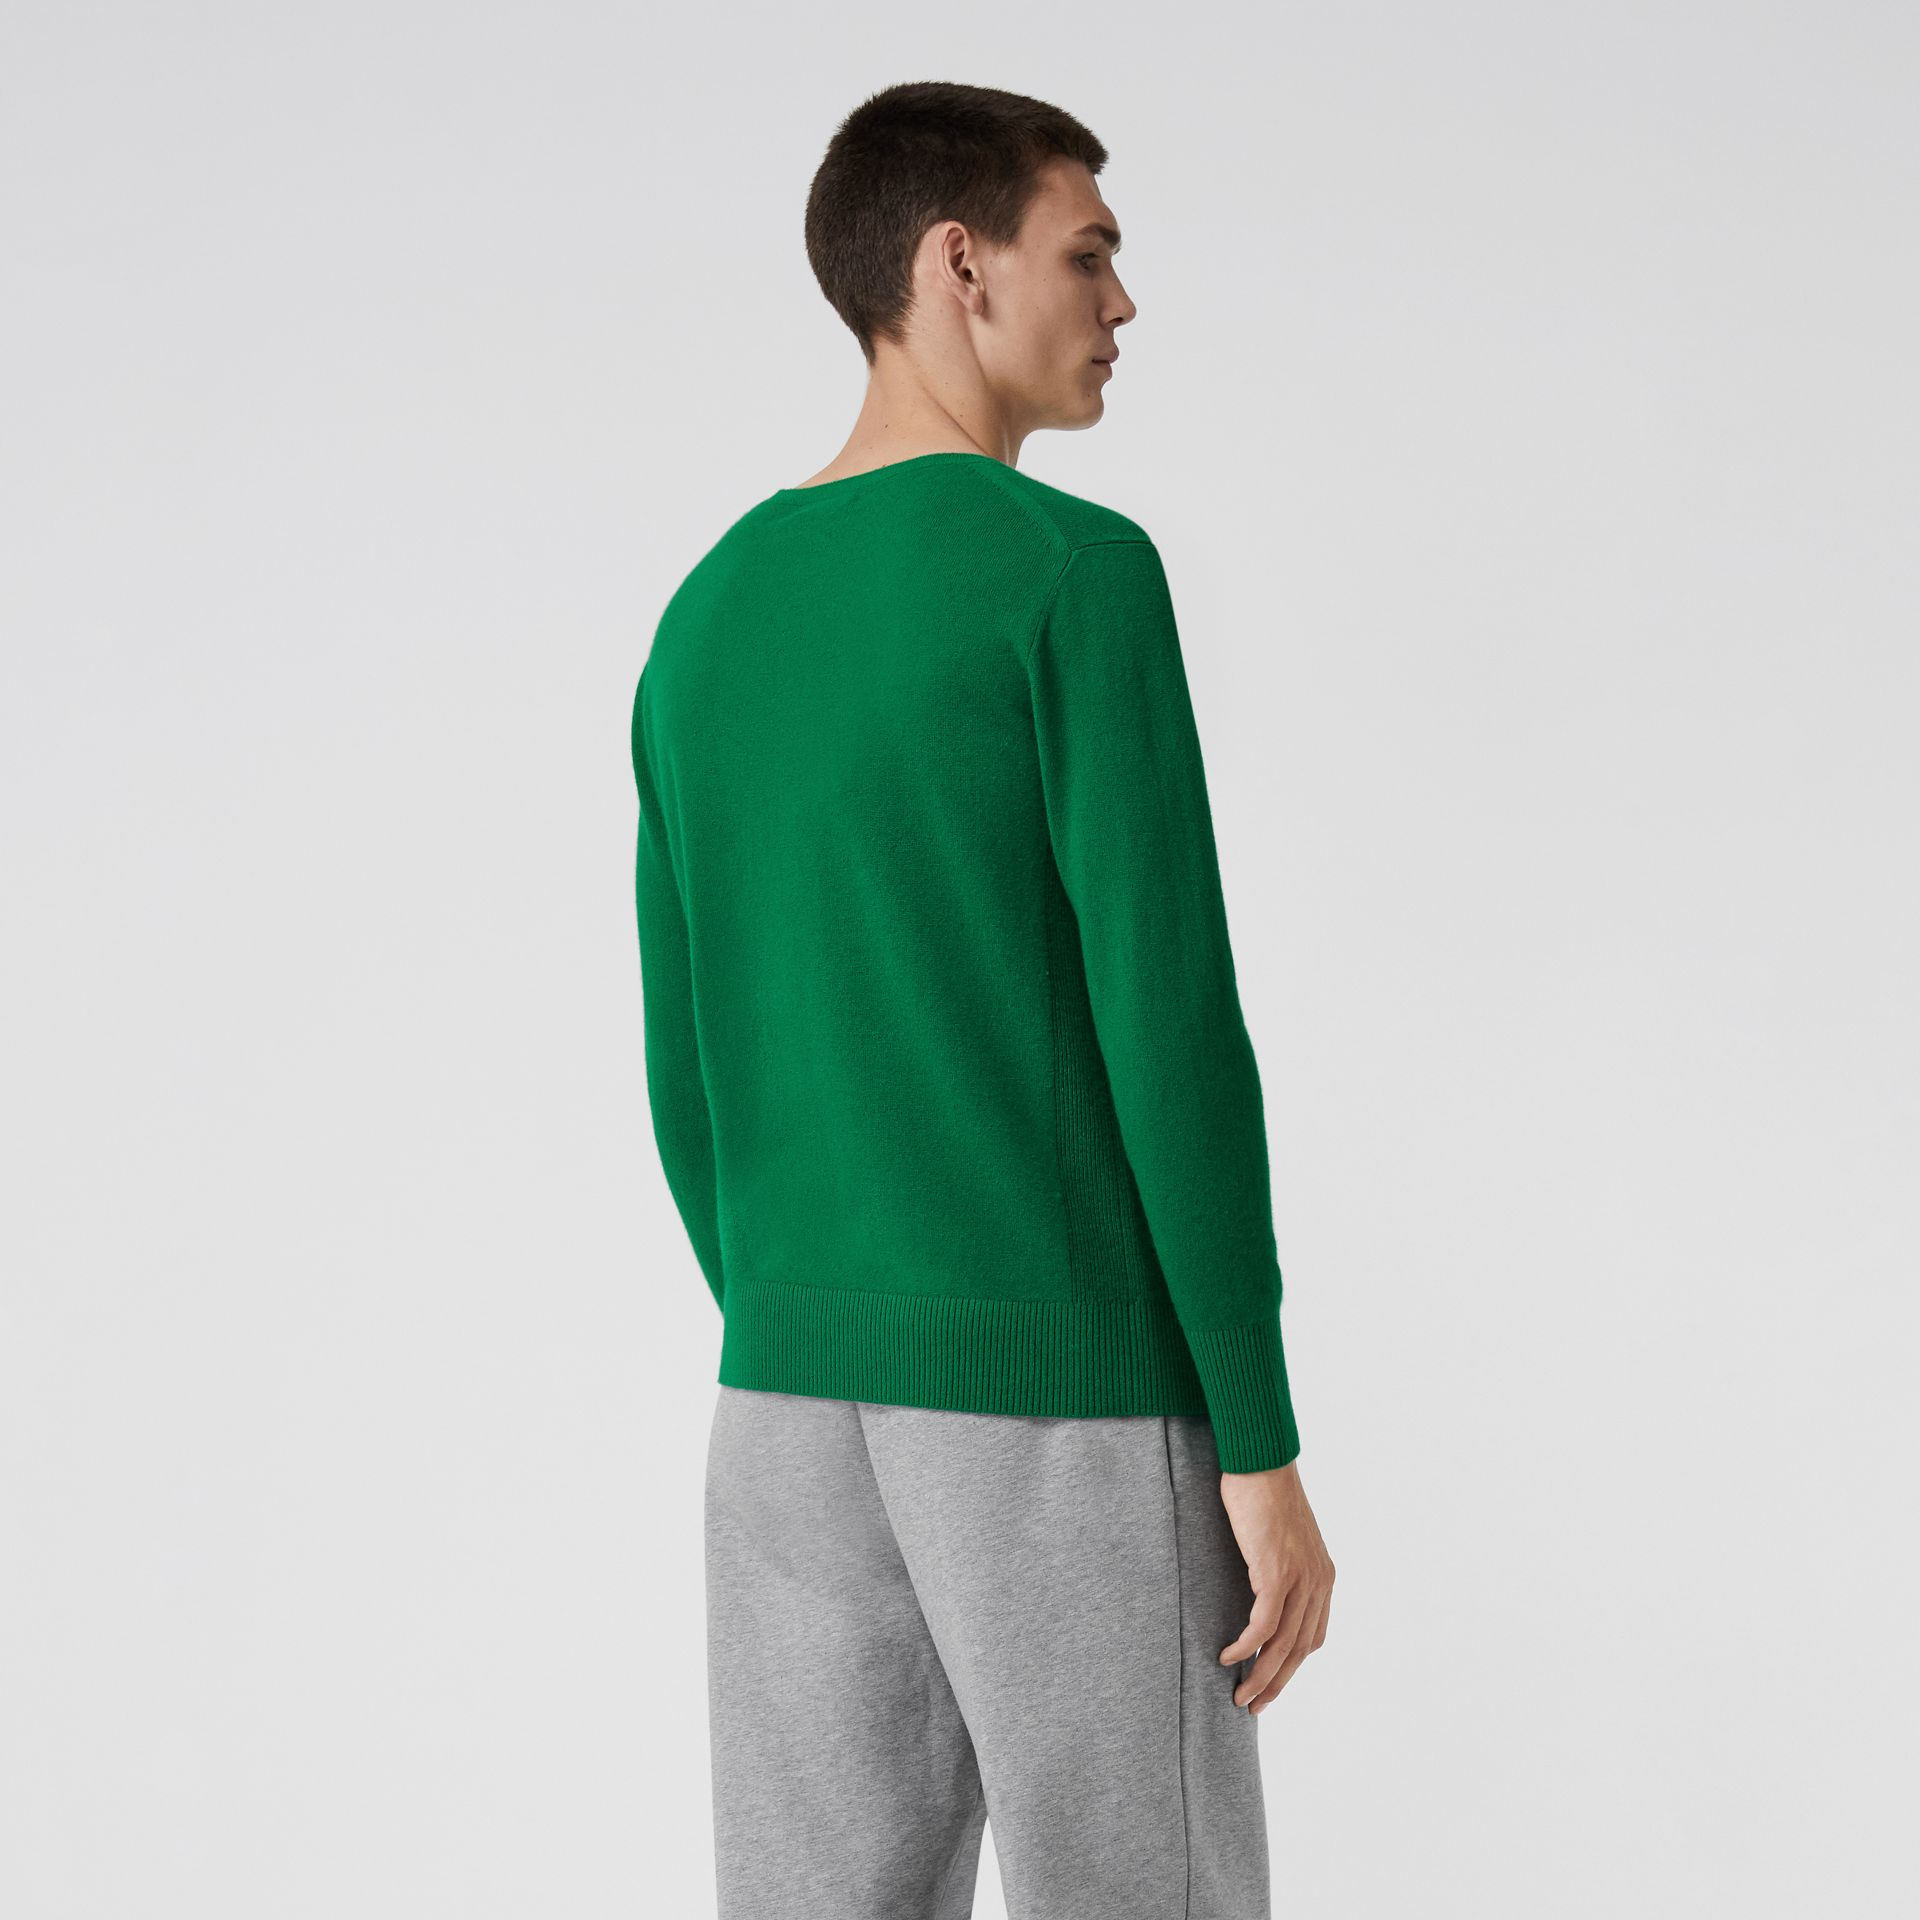 Embroidered Archive Logo Cashmere Sweater in Bright Green - Men | Burberry Singapore - gallery image 2